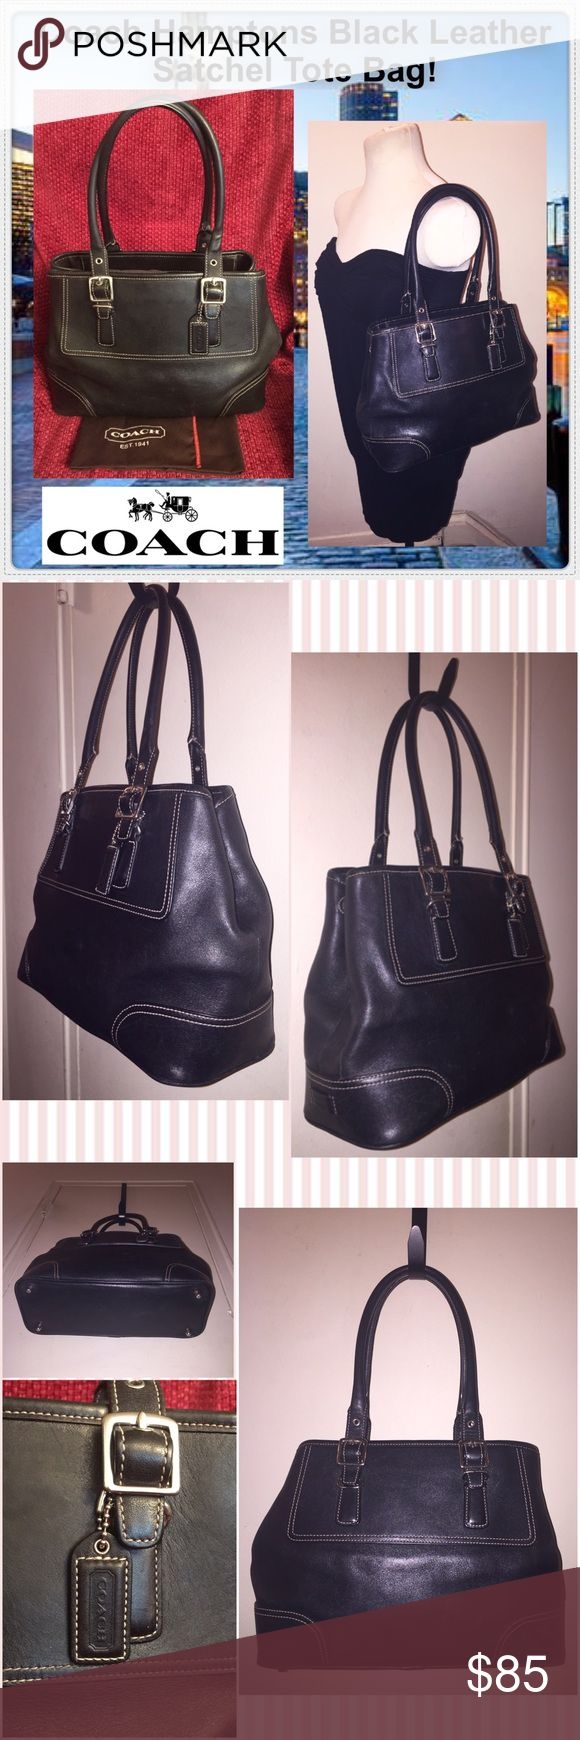 """Coach Hamptons Blk Leather Satchel Tote Bag! Coach Hamptons Black Leather Satchel Tote Bag! Features: 100% Authentic, top zip closure, two int slip pockets, key fob, one zip pocket, expandable sides (side snaps), distressed black leather, silver nickel hw, bottom metal feet, dual handles with 7"""" drop, Coach Creed & Serial Number & Hangtag. Style No. 7555. Includes dust bag. Measures: Approx. 14"""" across open, 10"""" across closed x 9"""" high x 4 1/2"""" wide. Minor ext marks with a cool light…"""